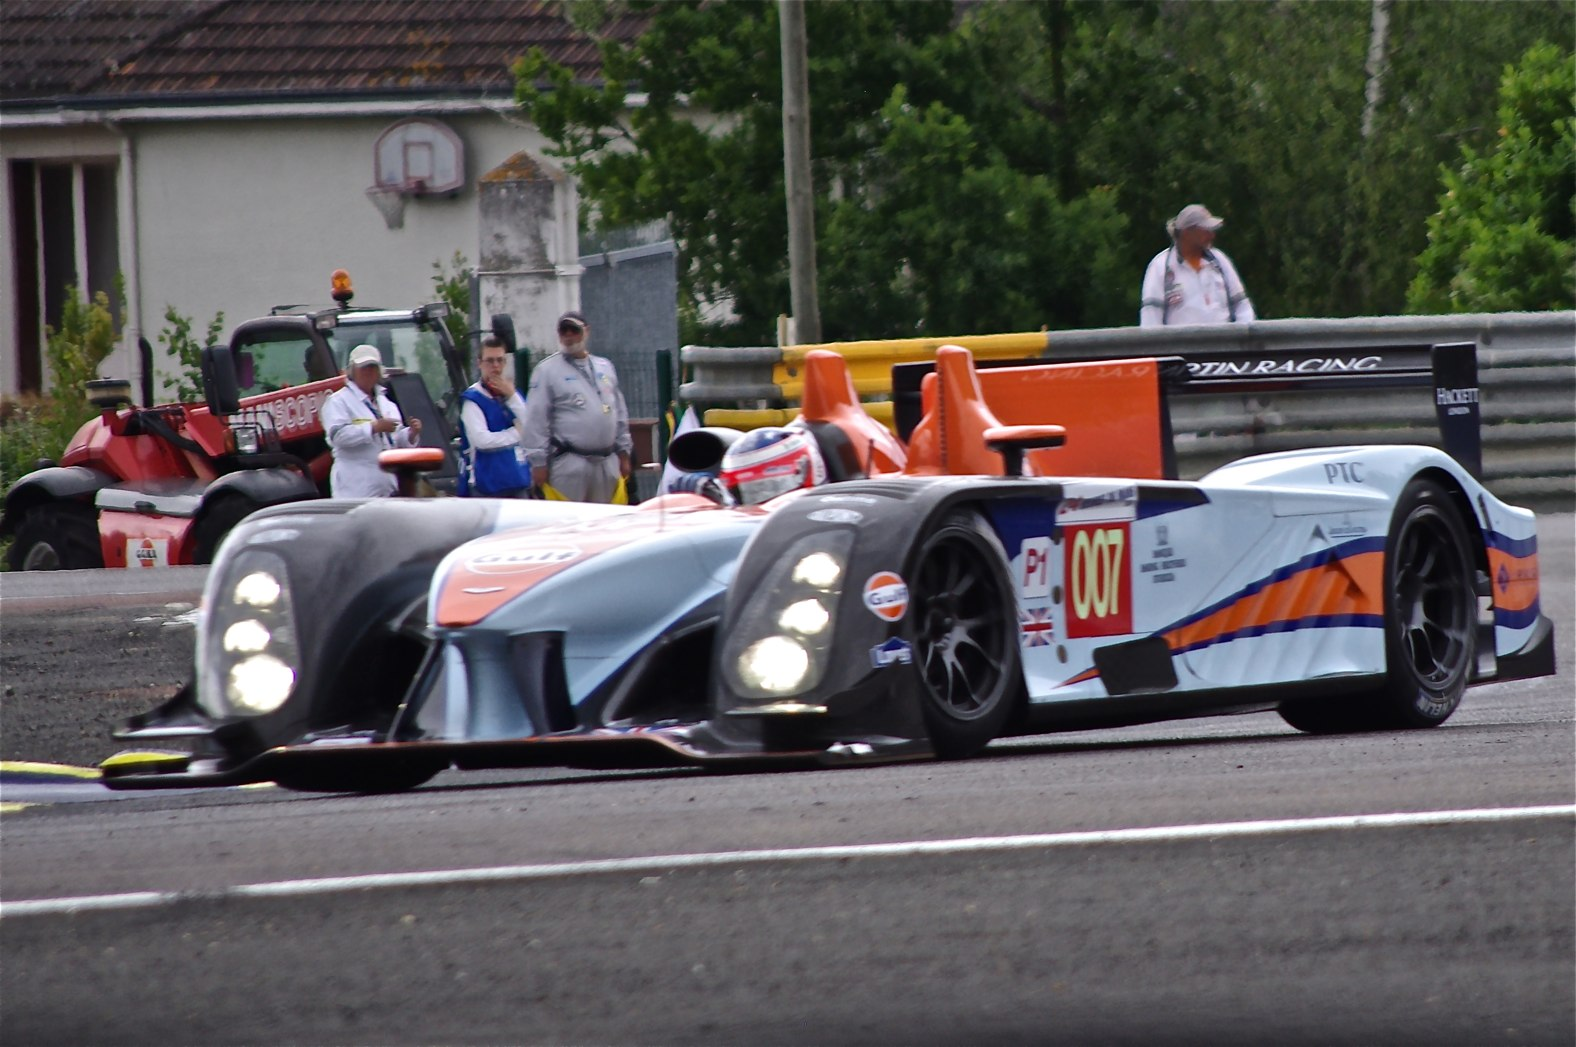 File Aston Martin Amr One Q3 Le Mans 2011 Jpg Wikimedia Commons